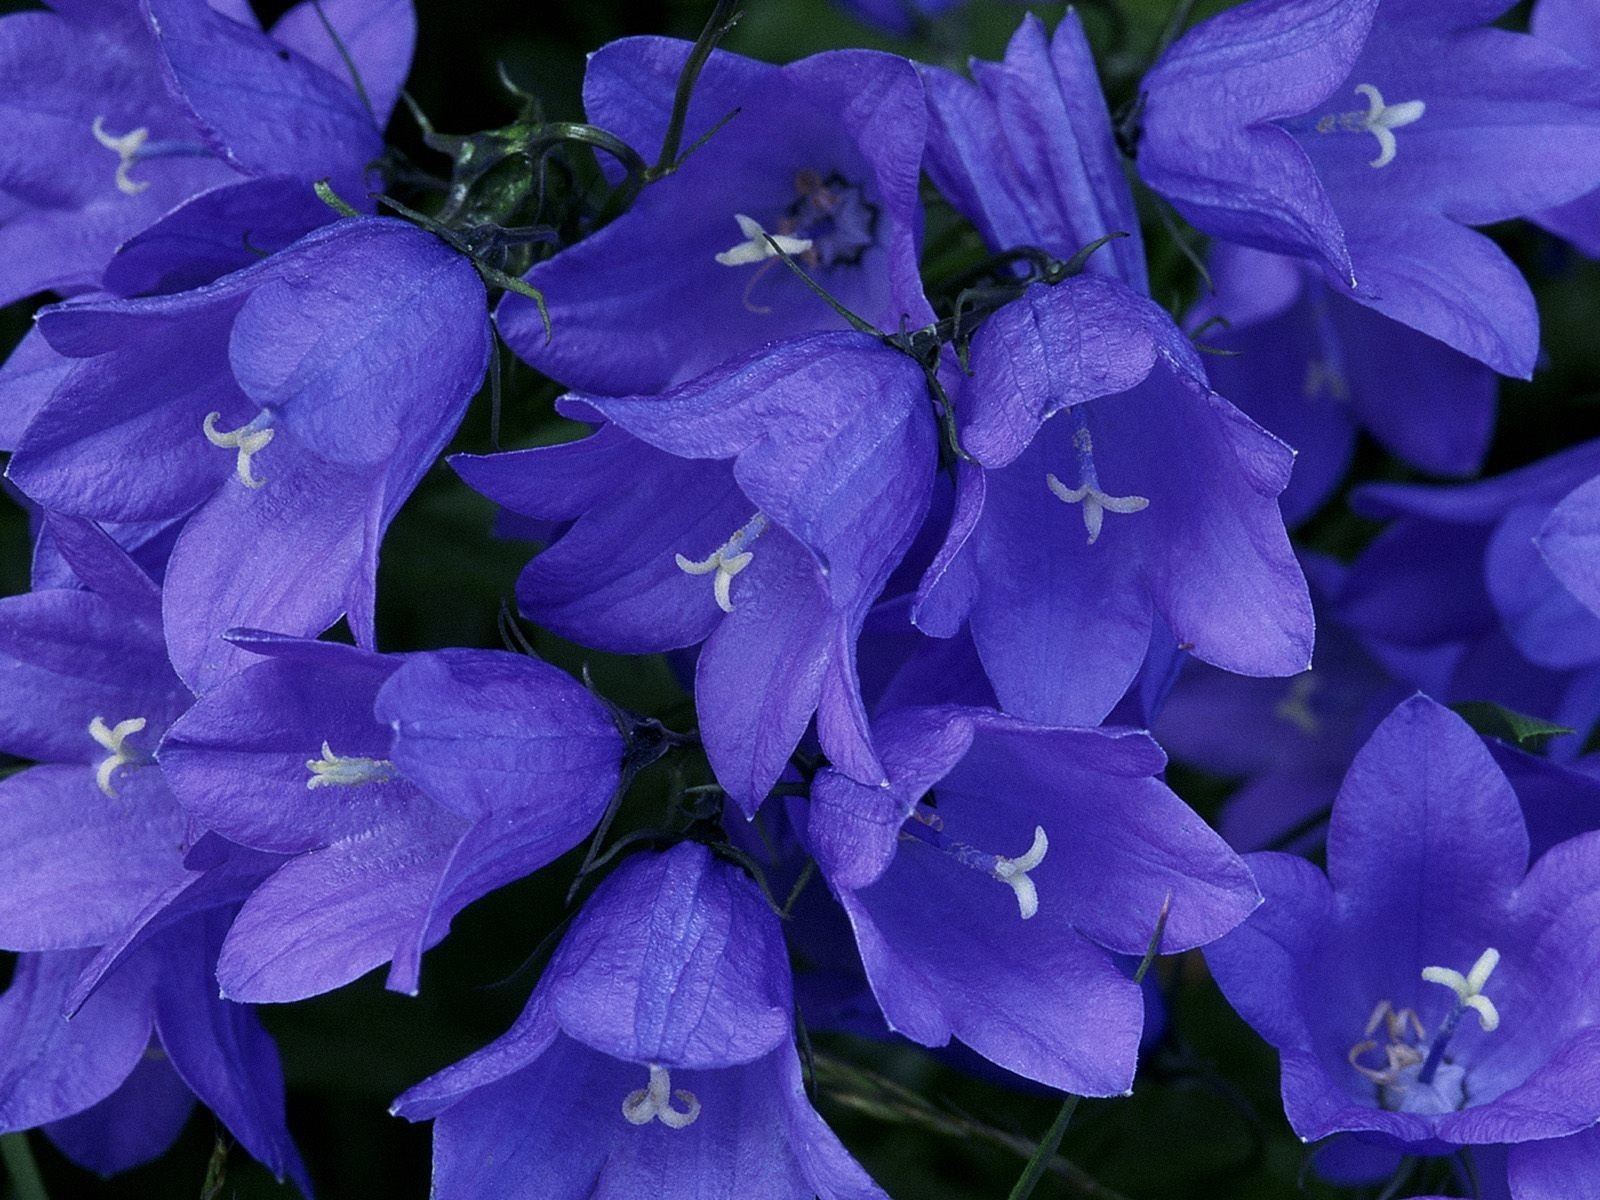 Campanula Kaemˈpaen Juːlə 2 Is One Of Several Genera In The Family Campanulaceae With The Common Name Be Purple Bell Flowers Blue Bell Flowers Flower Pictures